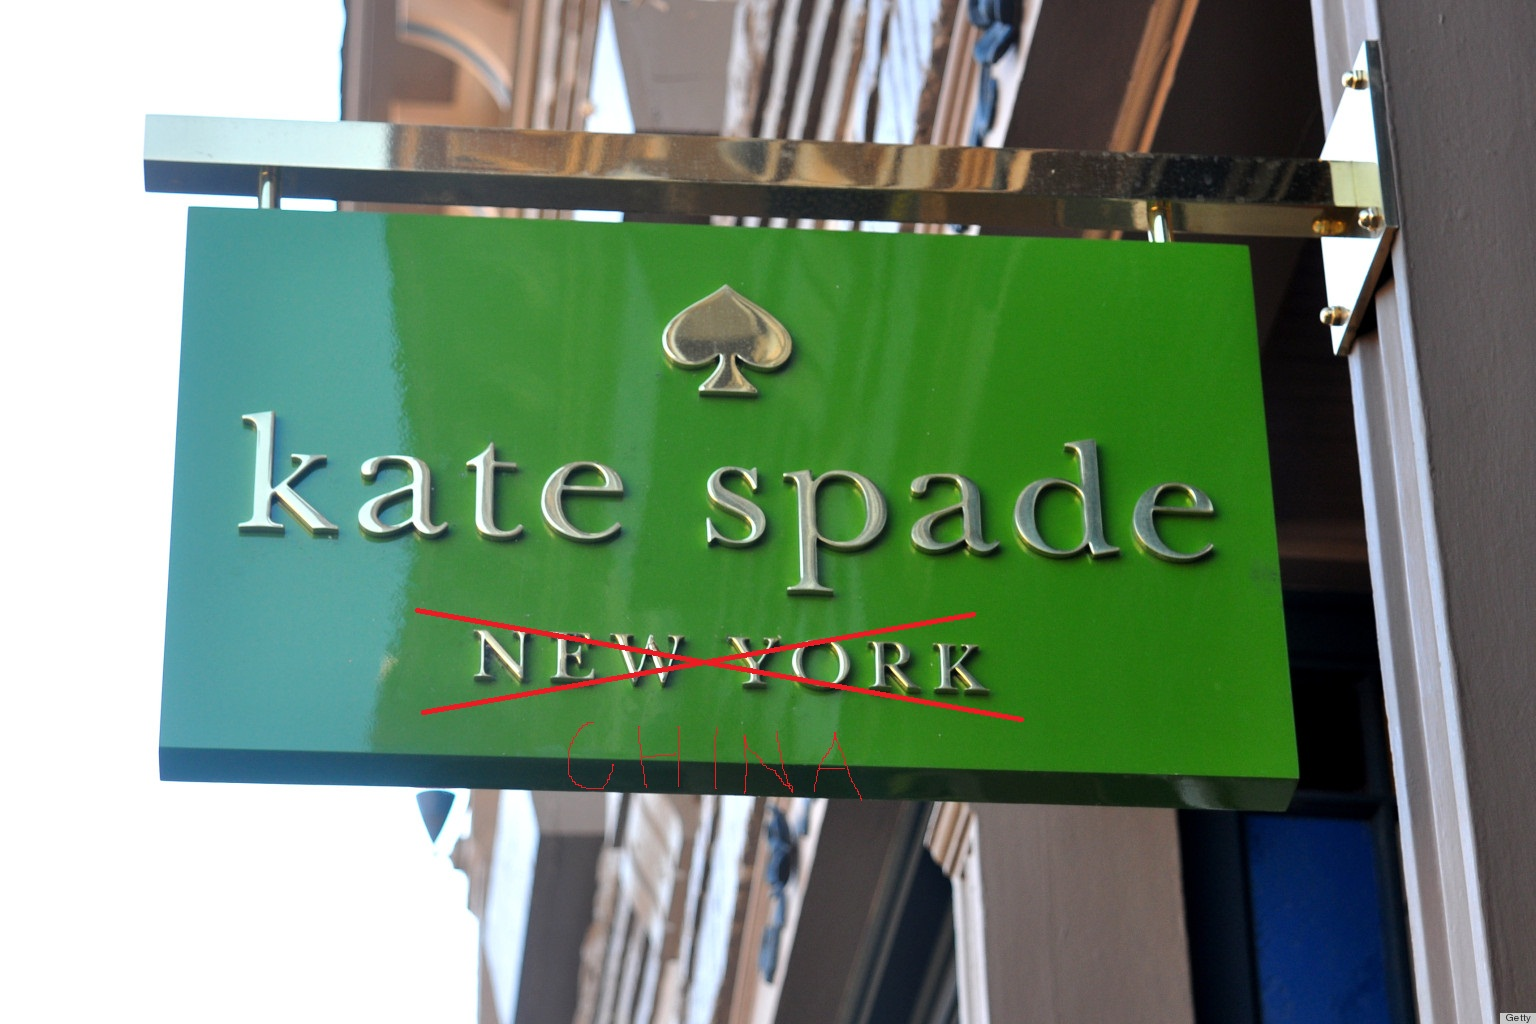 Kate Spade is made in China